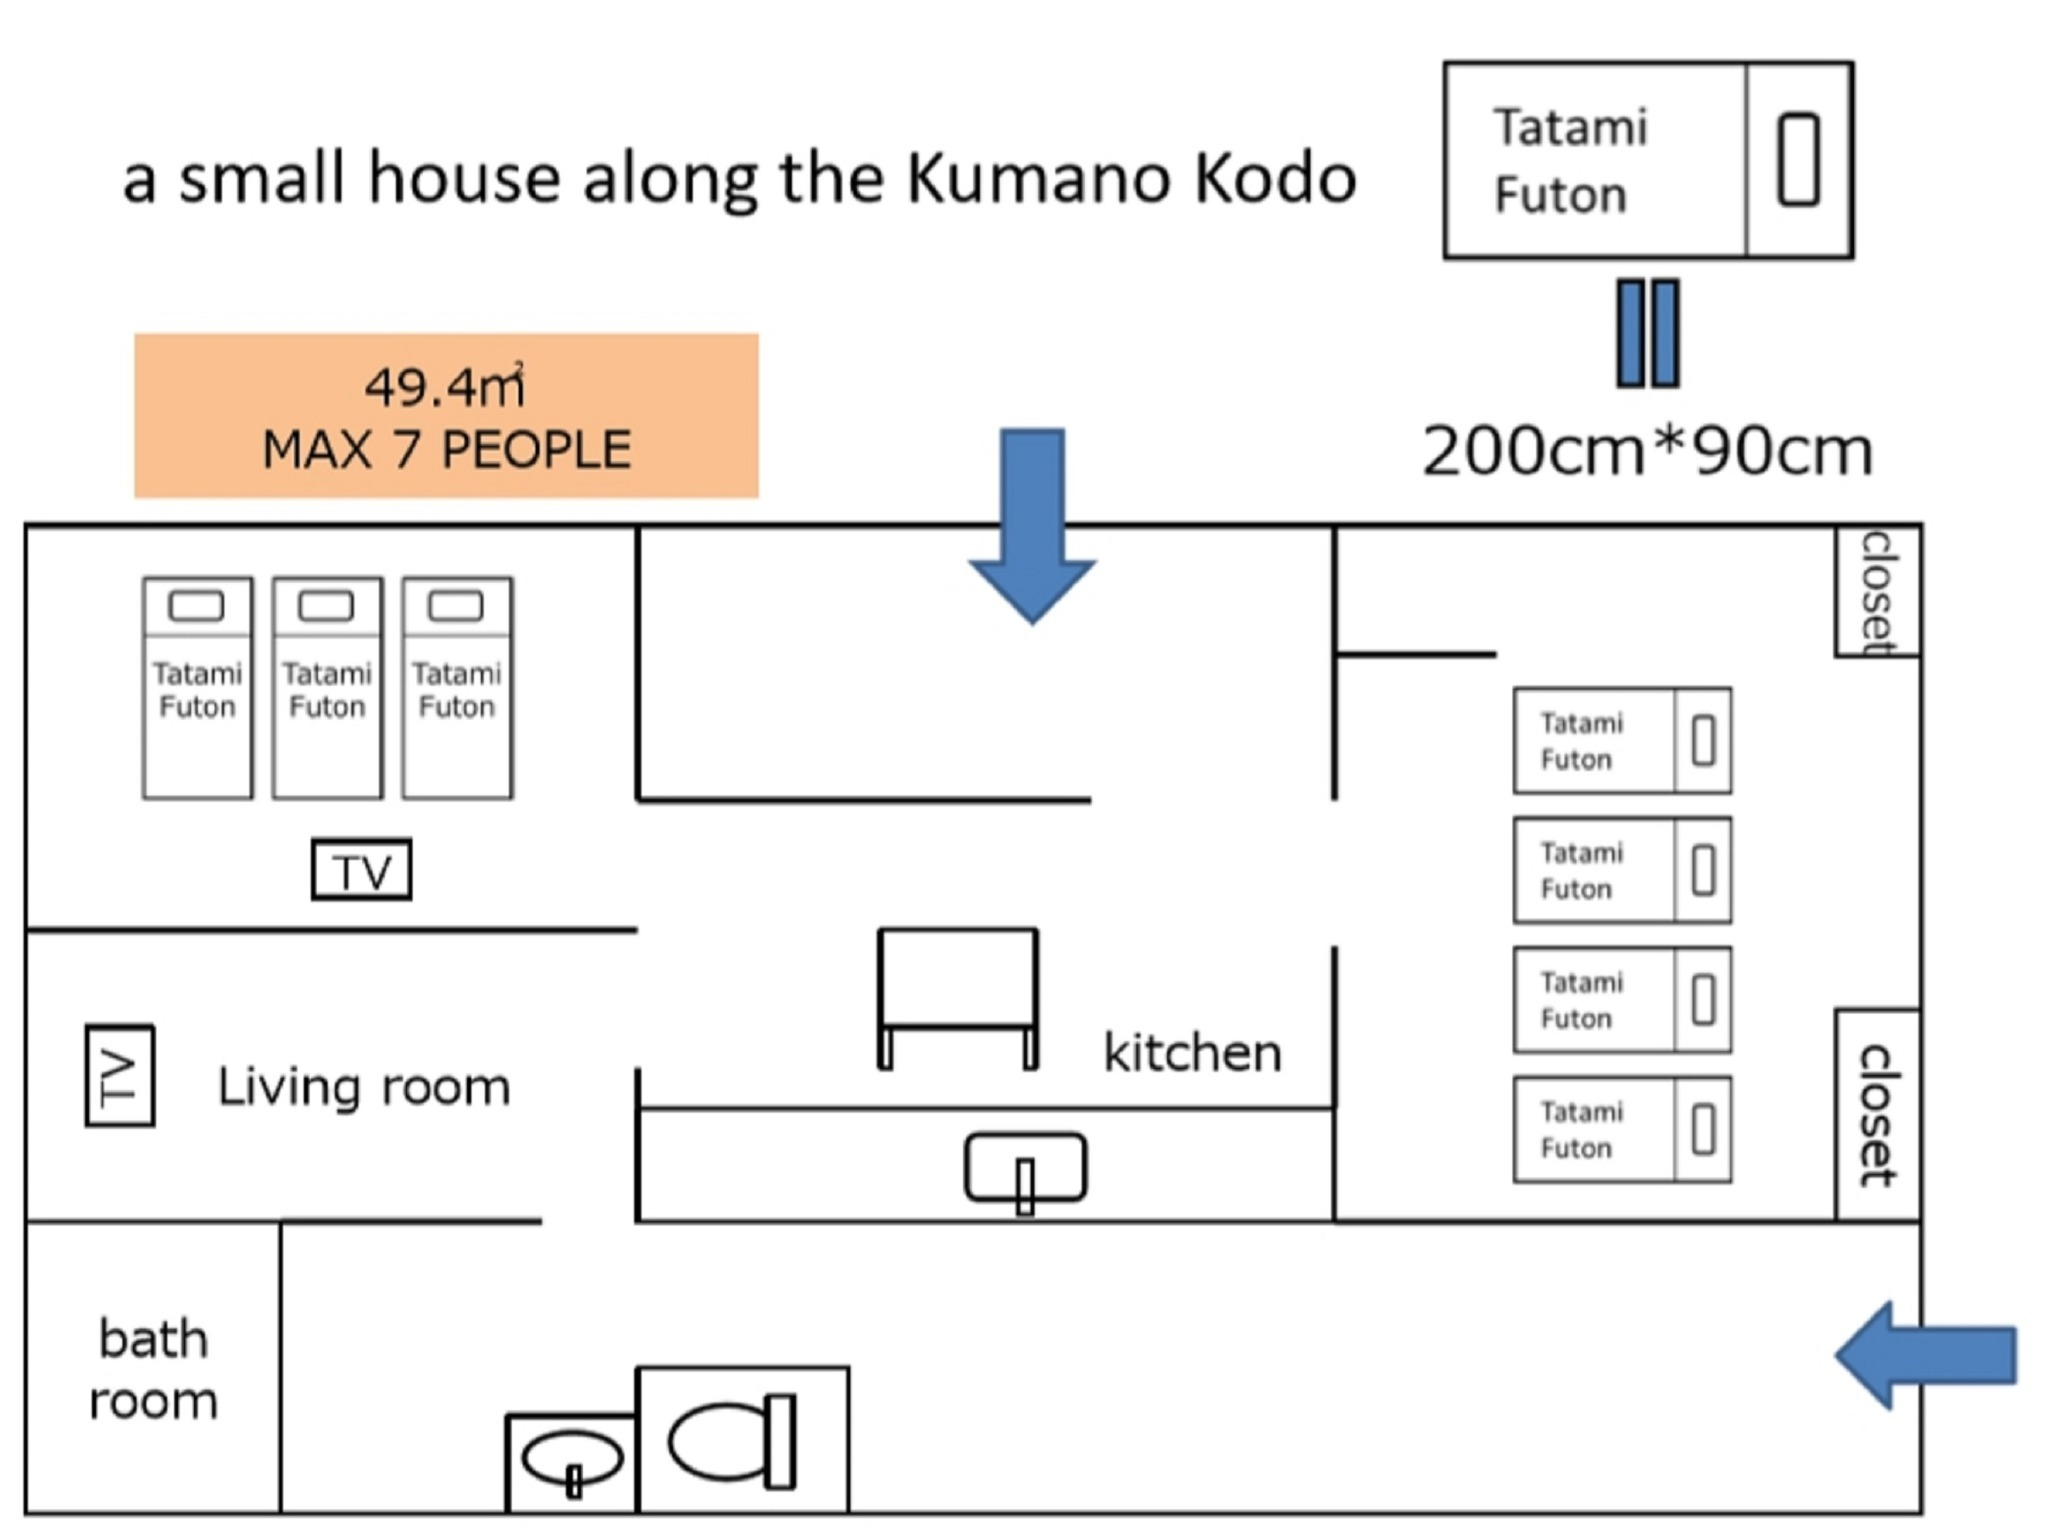 The floor plan of our house. 施設の見取図です。